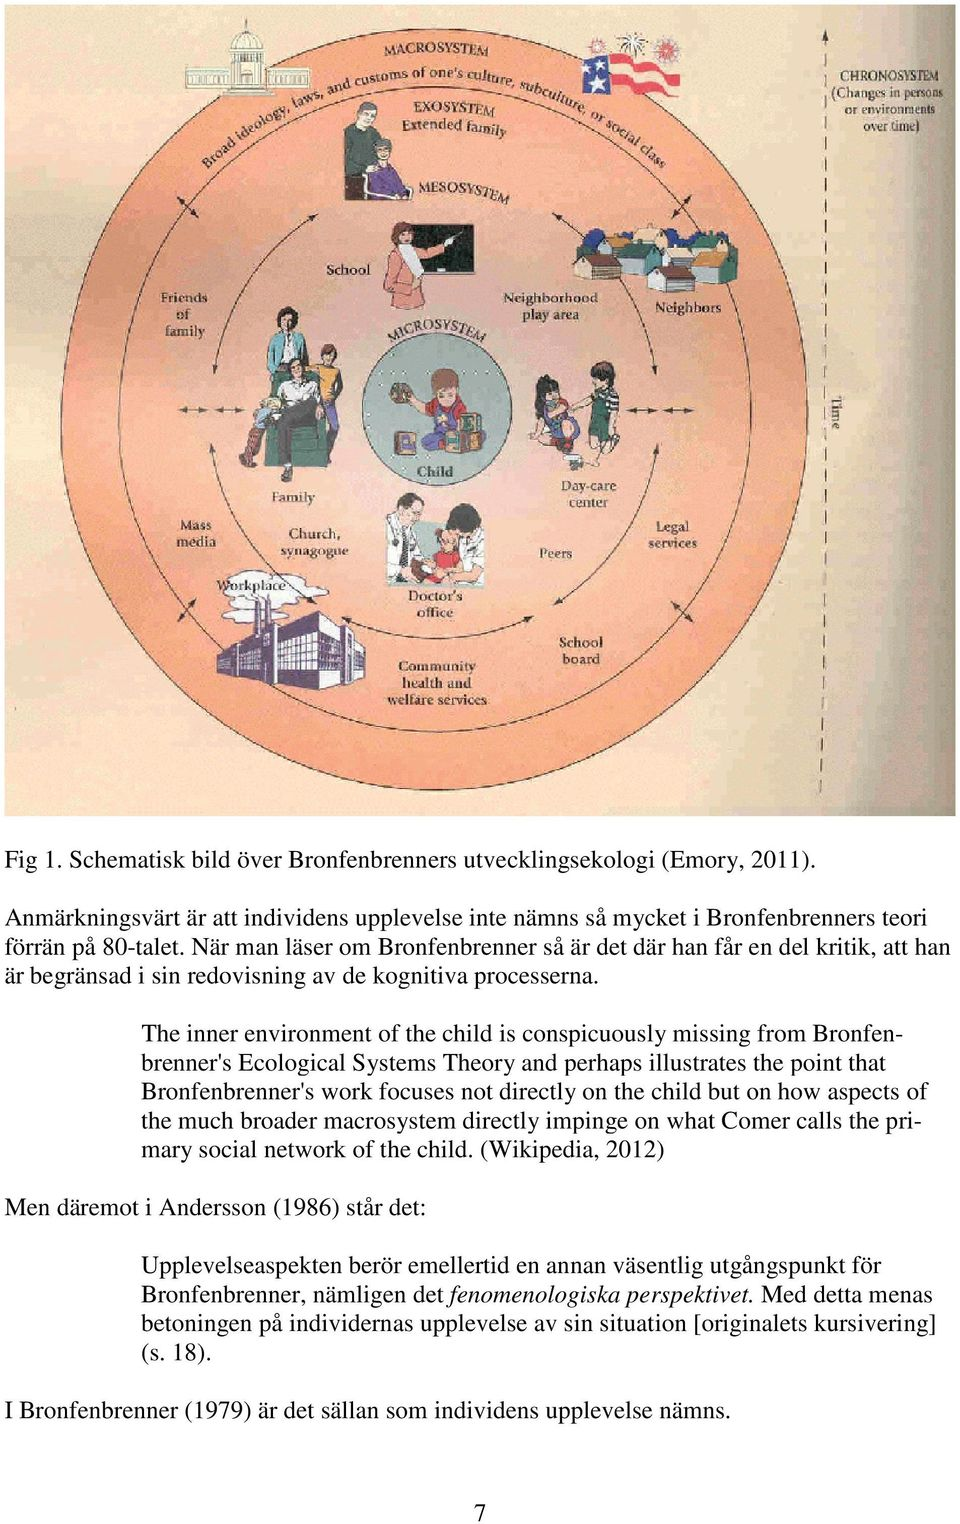 The inner environment of the child is conspicuously missing from Bronfenbrenner's Ecological Systems Theory and perhaps illustrates the point that Bronfenbrenner's work focuses not directly on the